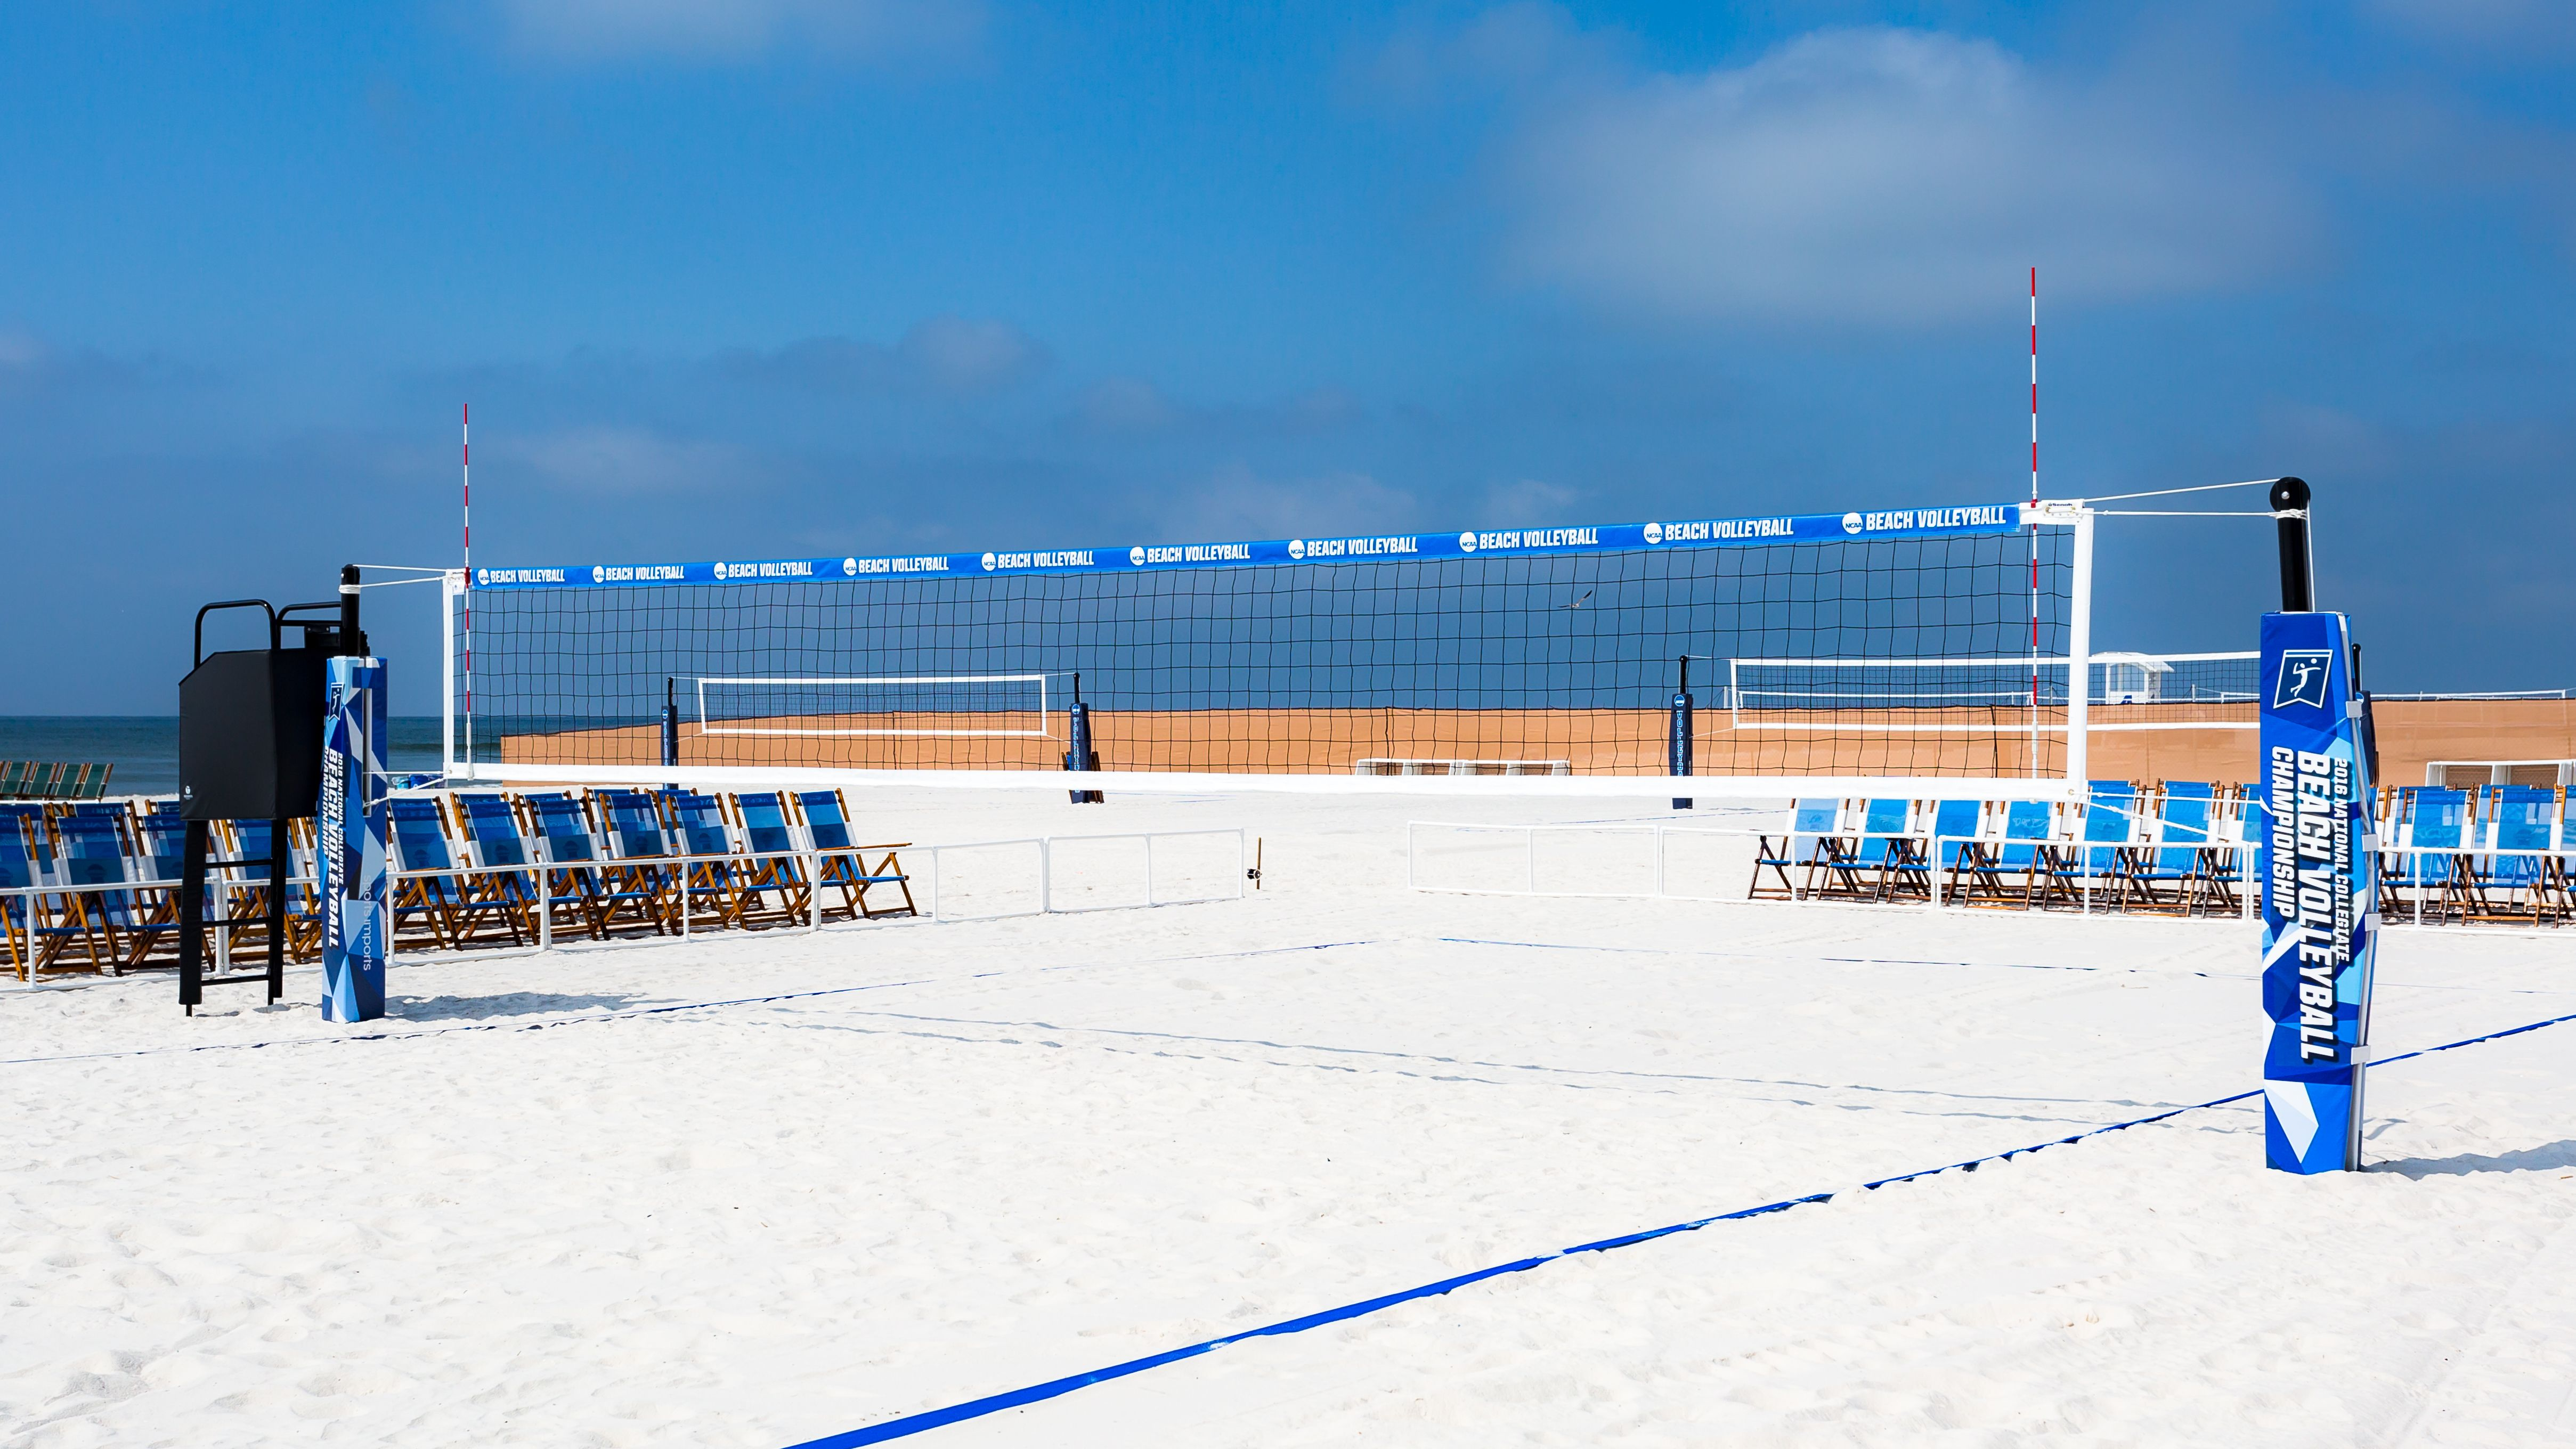 Inaugural Ncaa Beach Volleyball Championship In Gulf Shores Alabama Sports Imports Beach Volleyball Equipment Volleyball Net Volleyball Equipment Volleyball